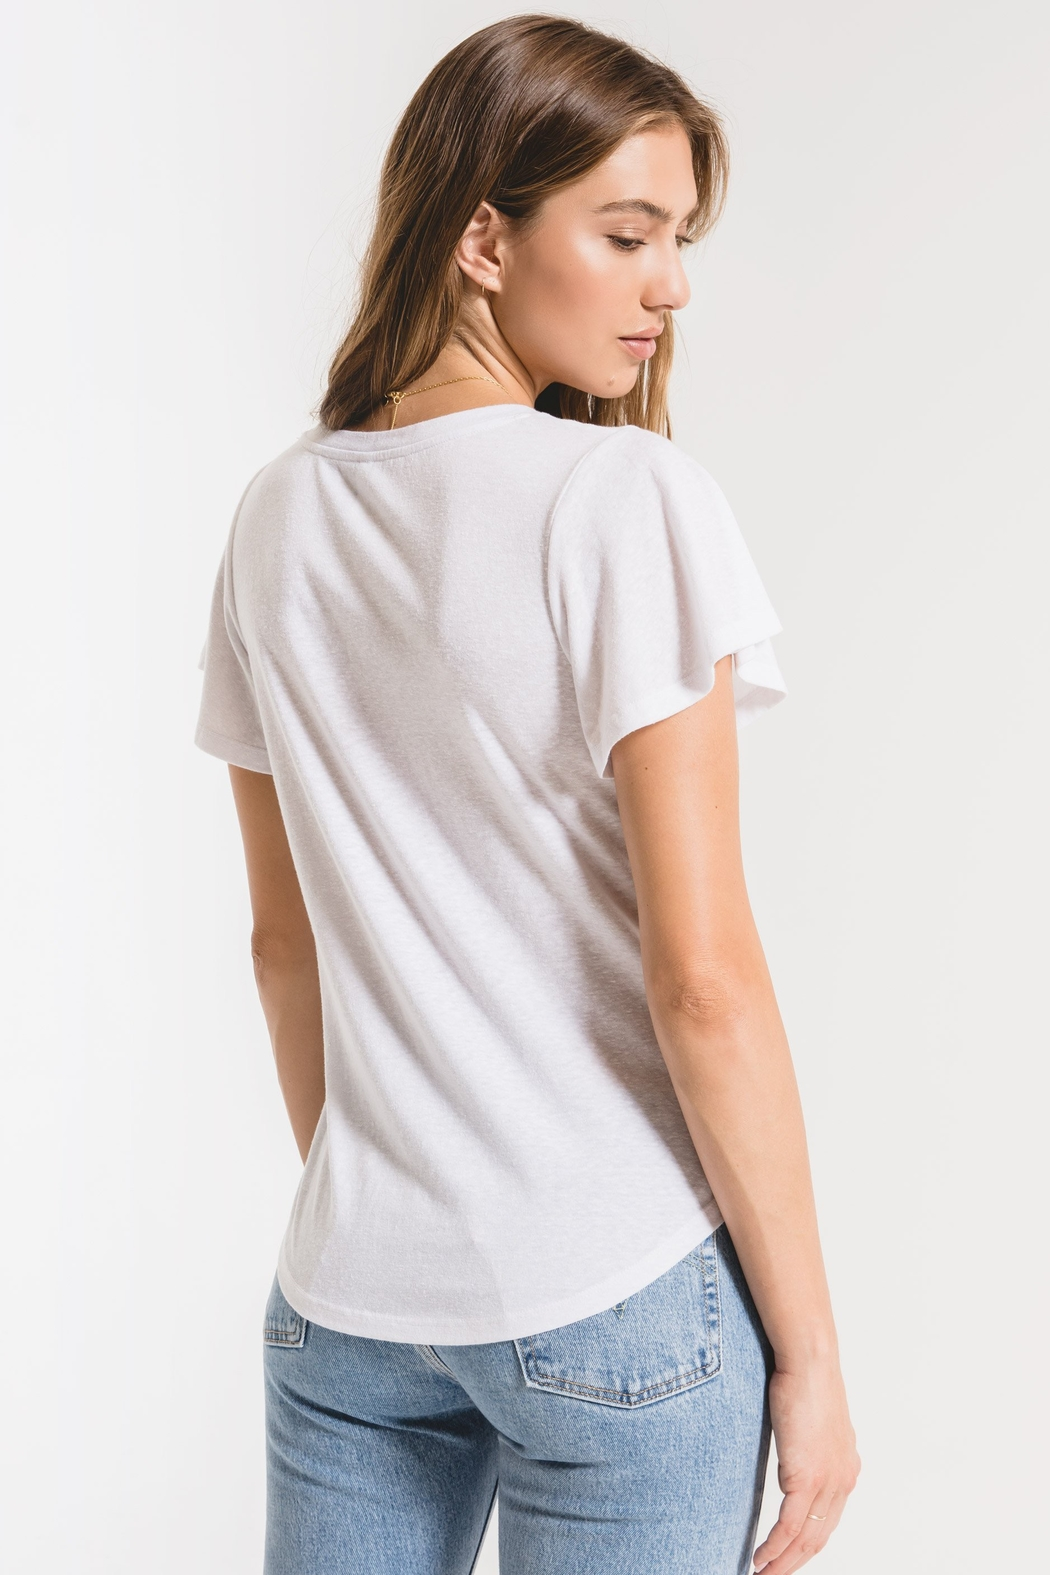 z supply Triblend Flutter V-Neck Tee - Side Cropped Image